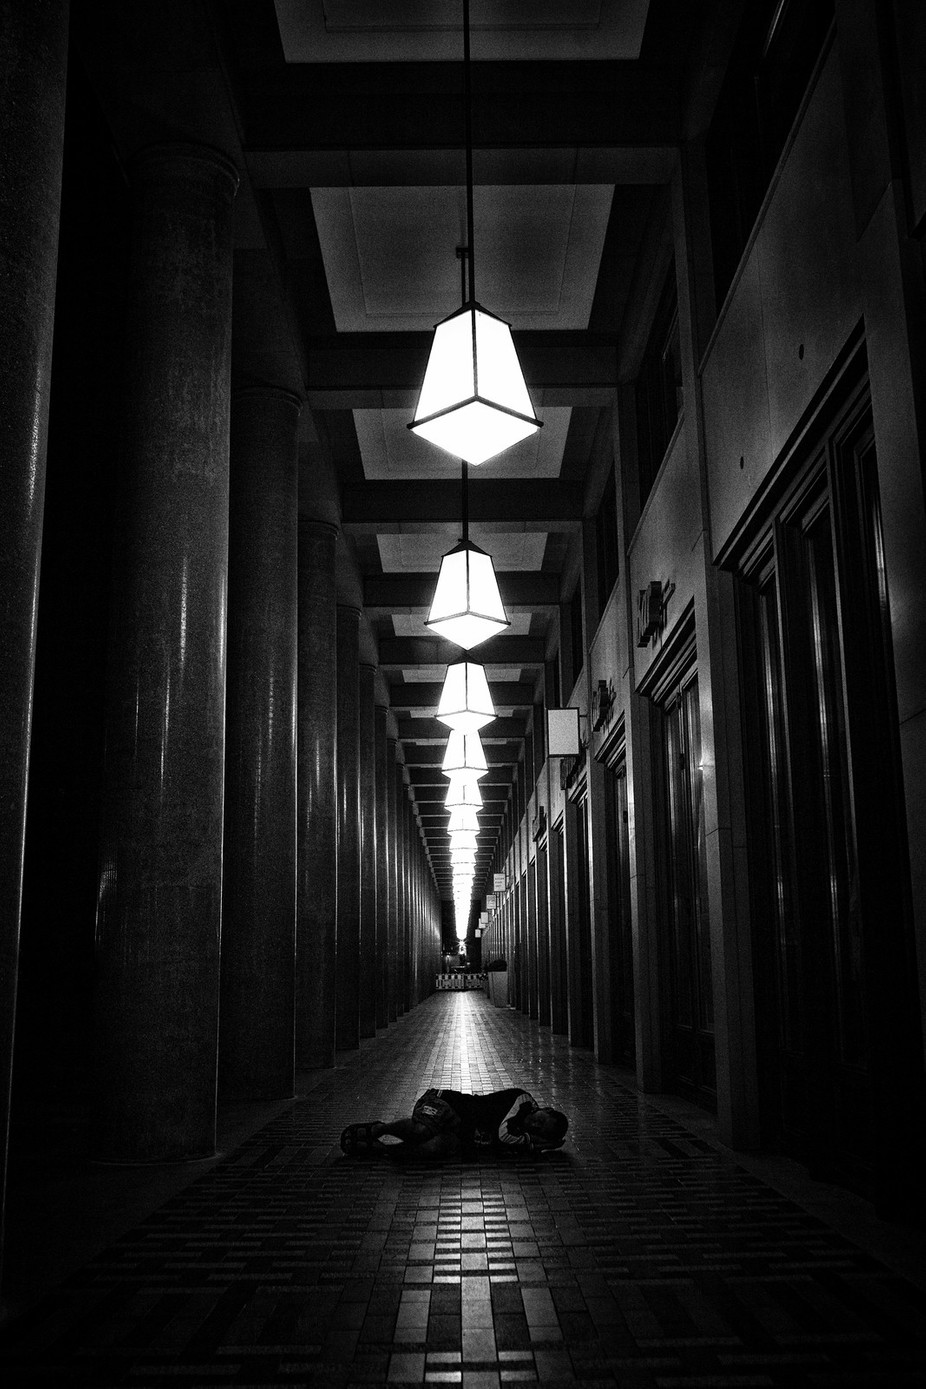 The city of strangers by jevgenijscolokov - Shooting Tunnels Photo Contest